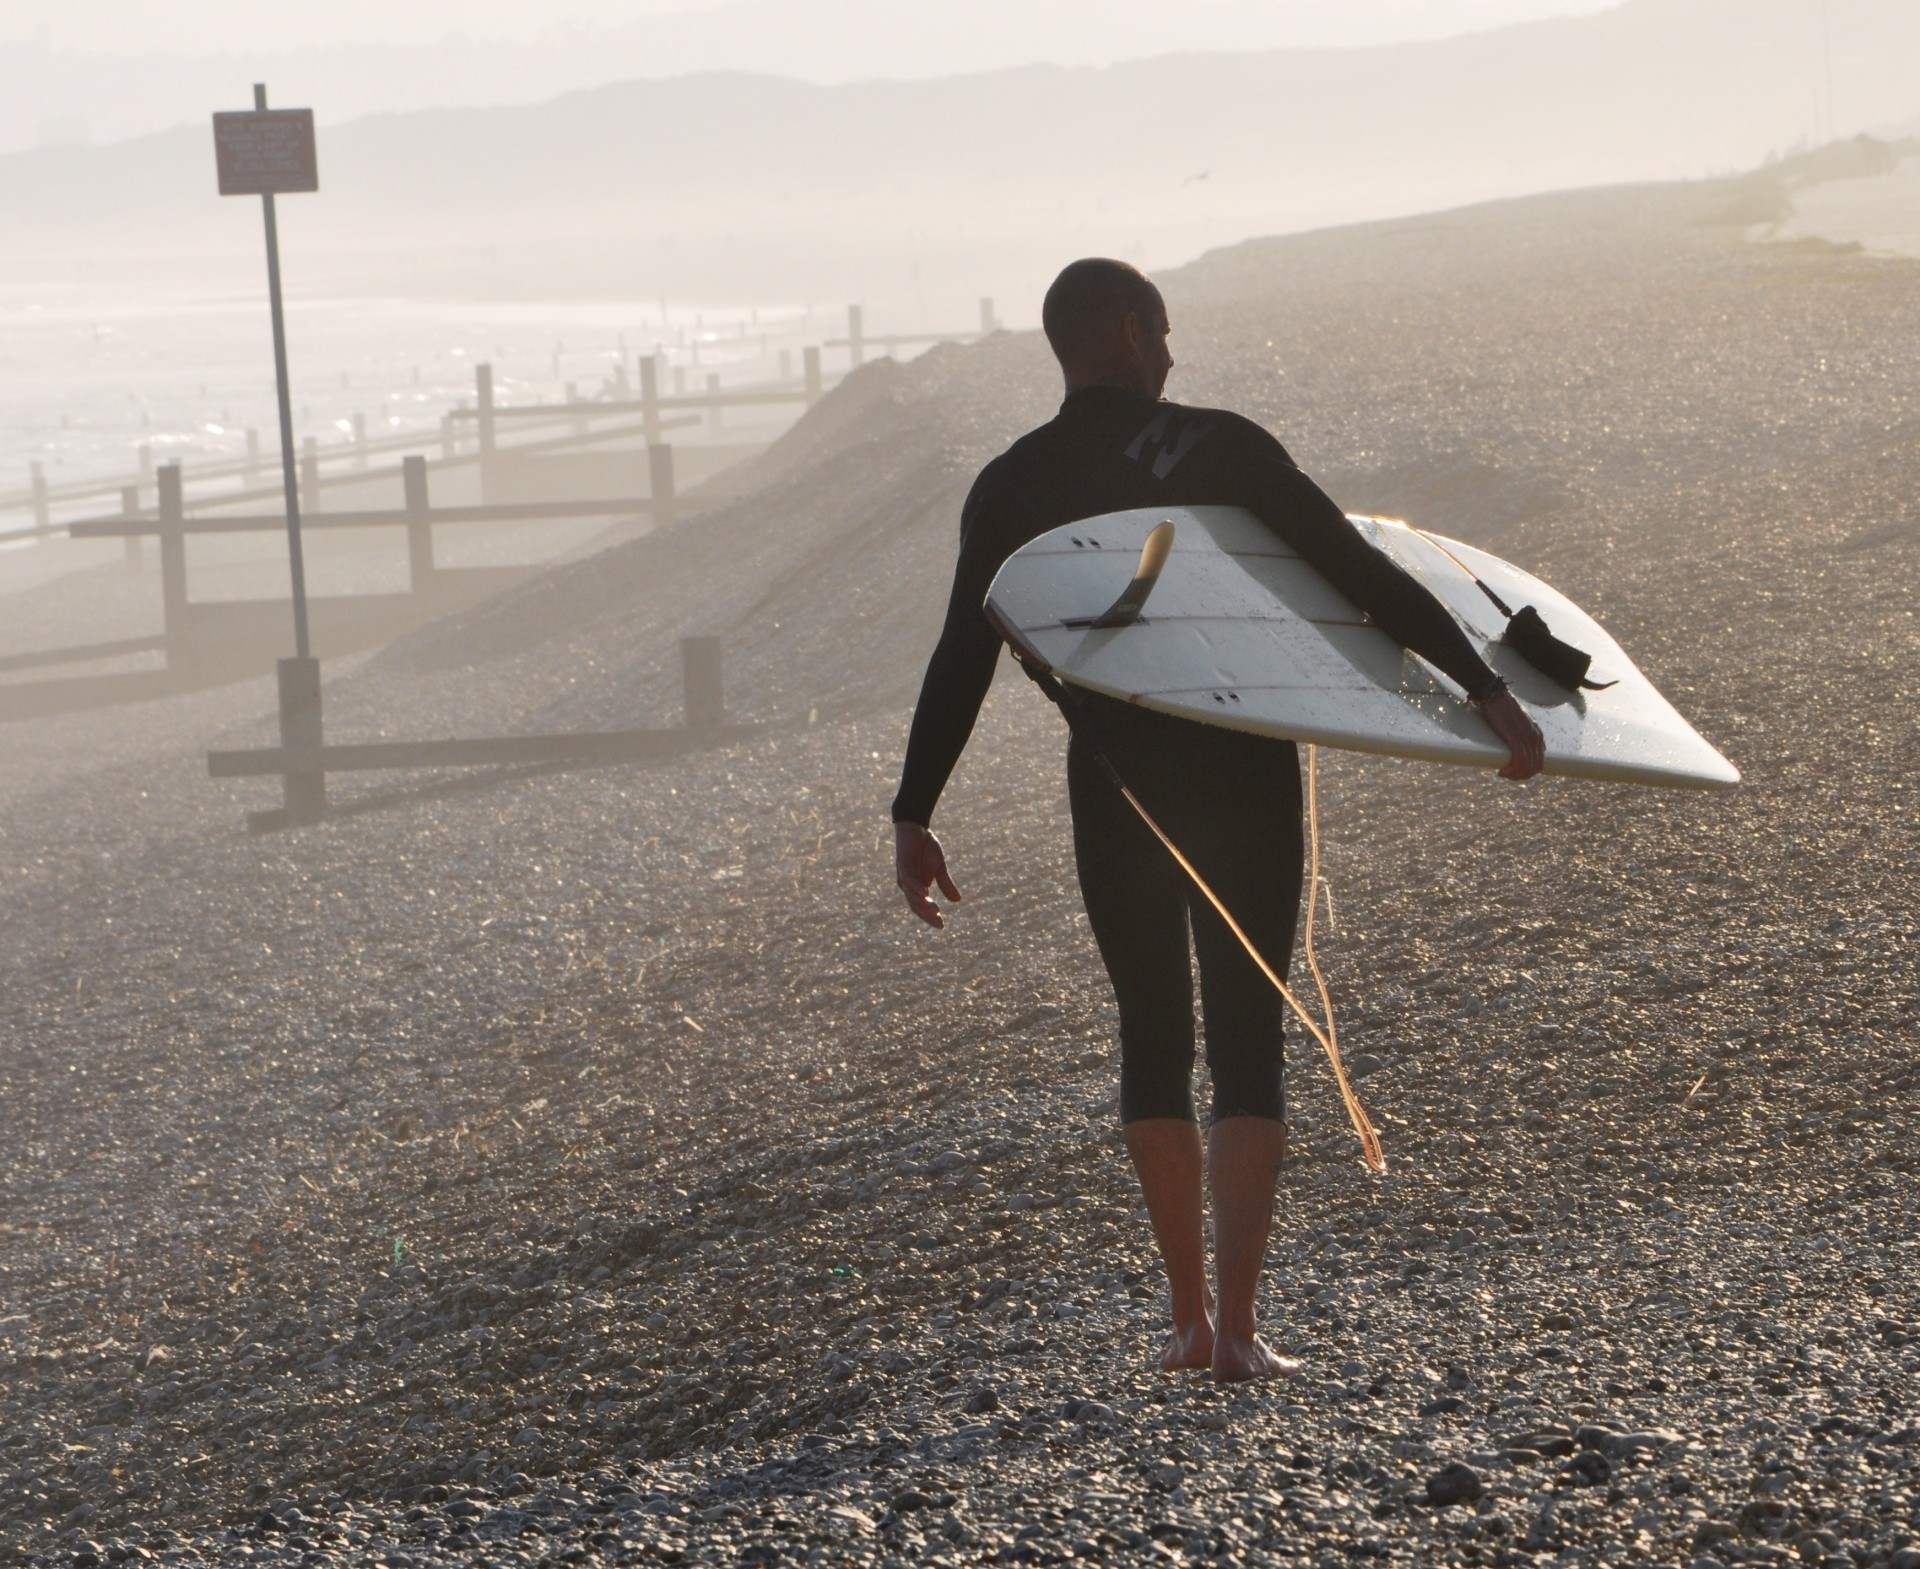 maxsurf photography's photo of Camber sands